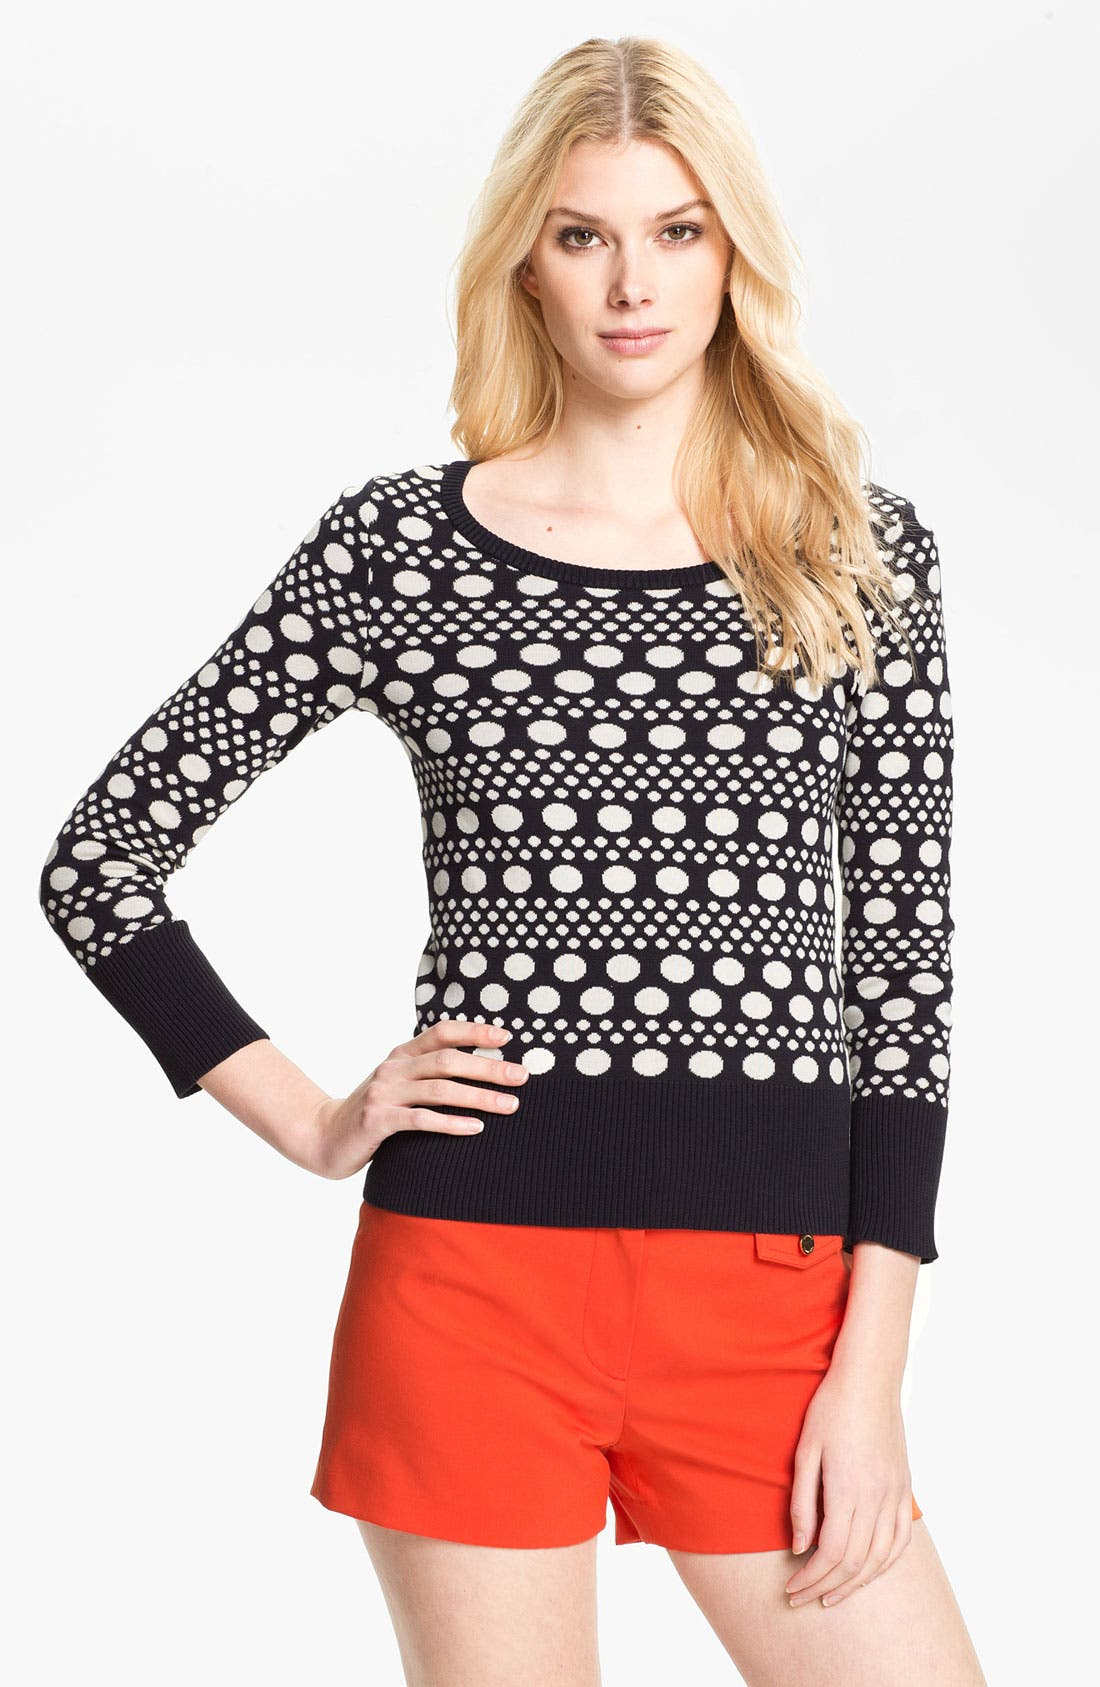 Main Image - Tory Burch 'Falon' Sweater